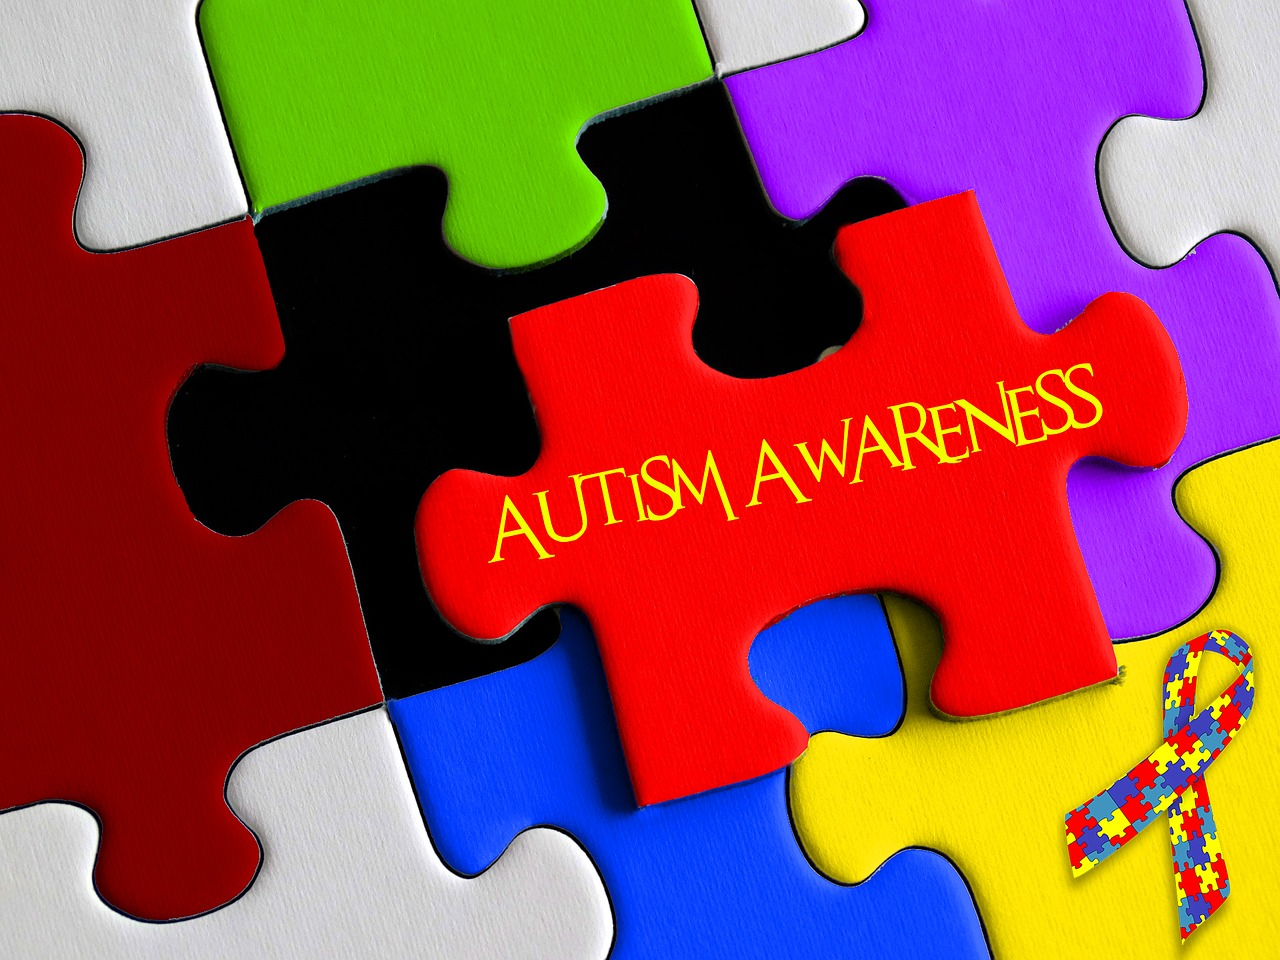 Champions Autism Network has set out to help spread autism awareness!